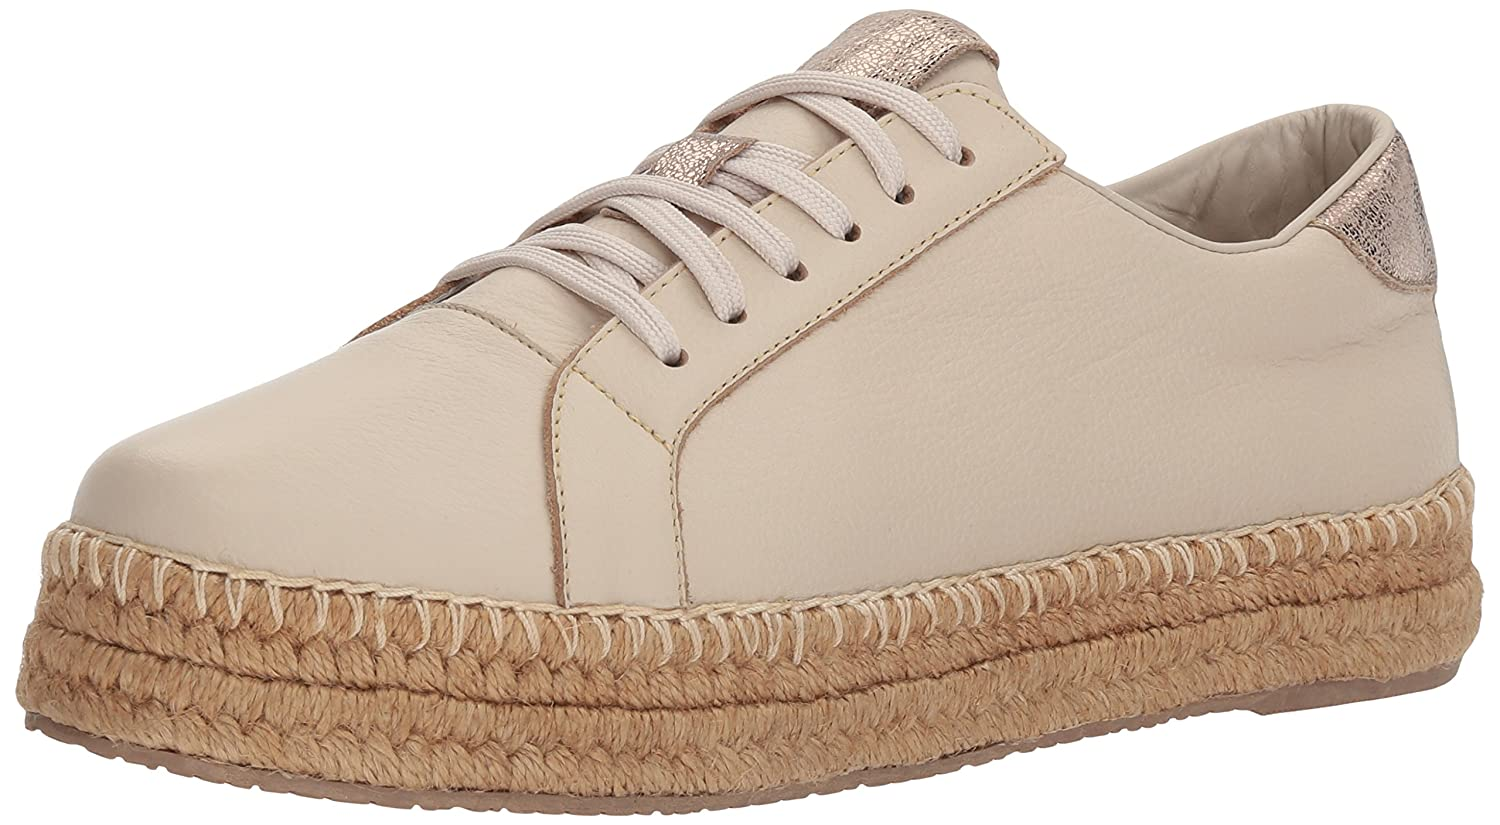 KAANAS Women's Arizona Leather Espadrille 6 Platform Lace-up Sneaker B075MT4JXQ 6 Espadrille B(M) US|Cream 94b5e1